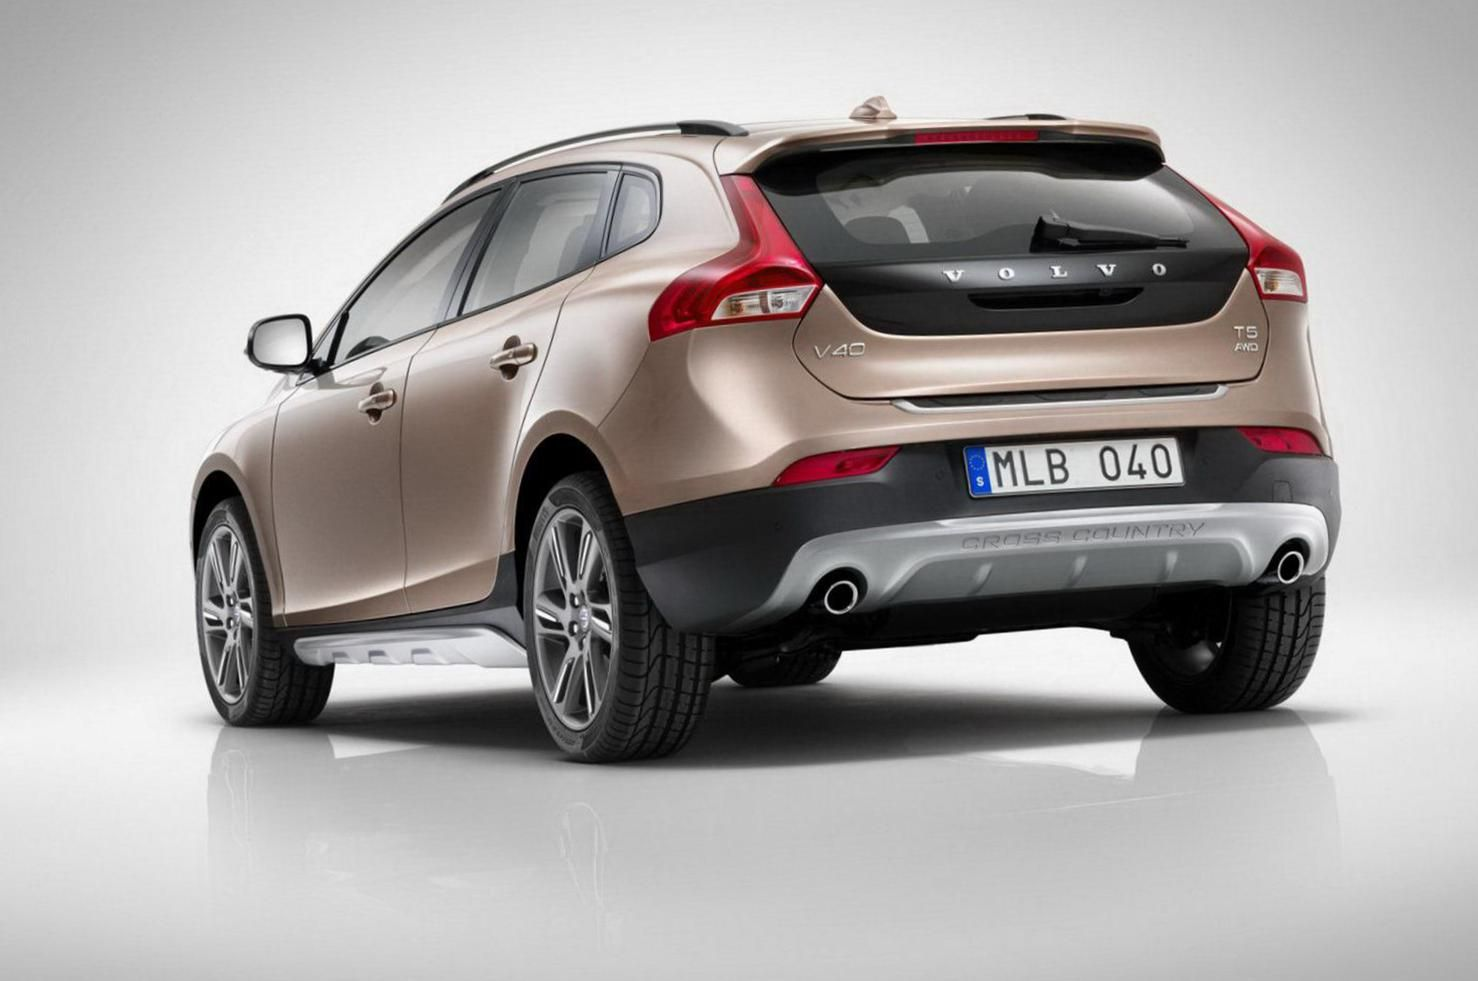 Pin By Felipe Leitao On Cars European Volvo V40 Volvo Automobile